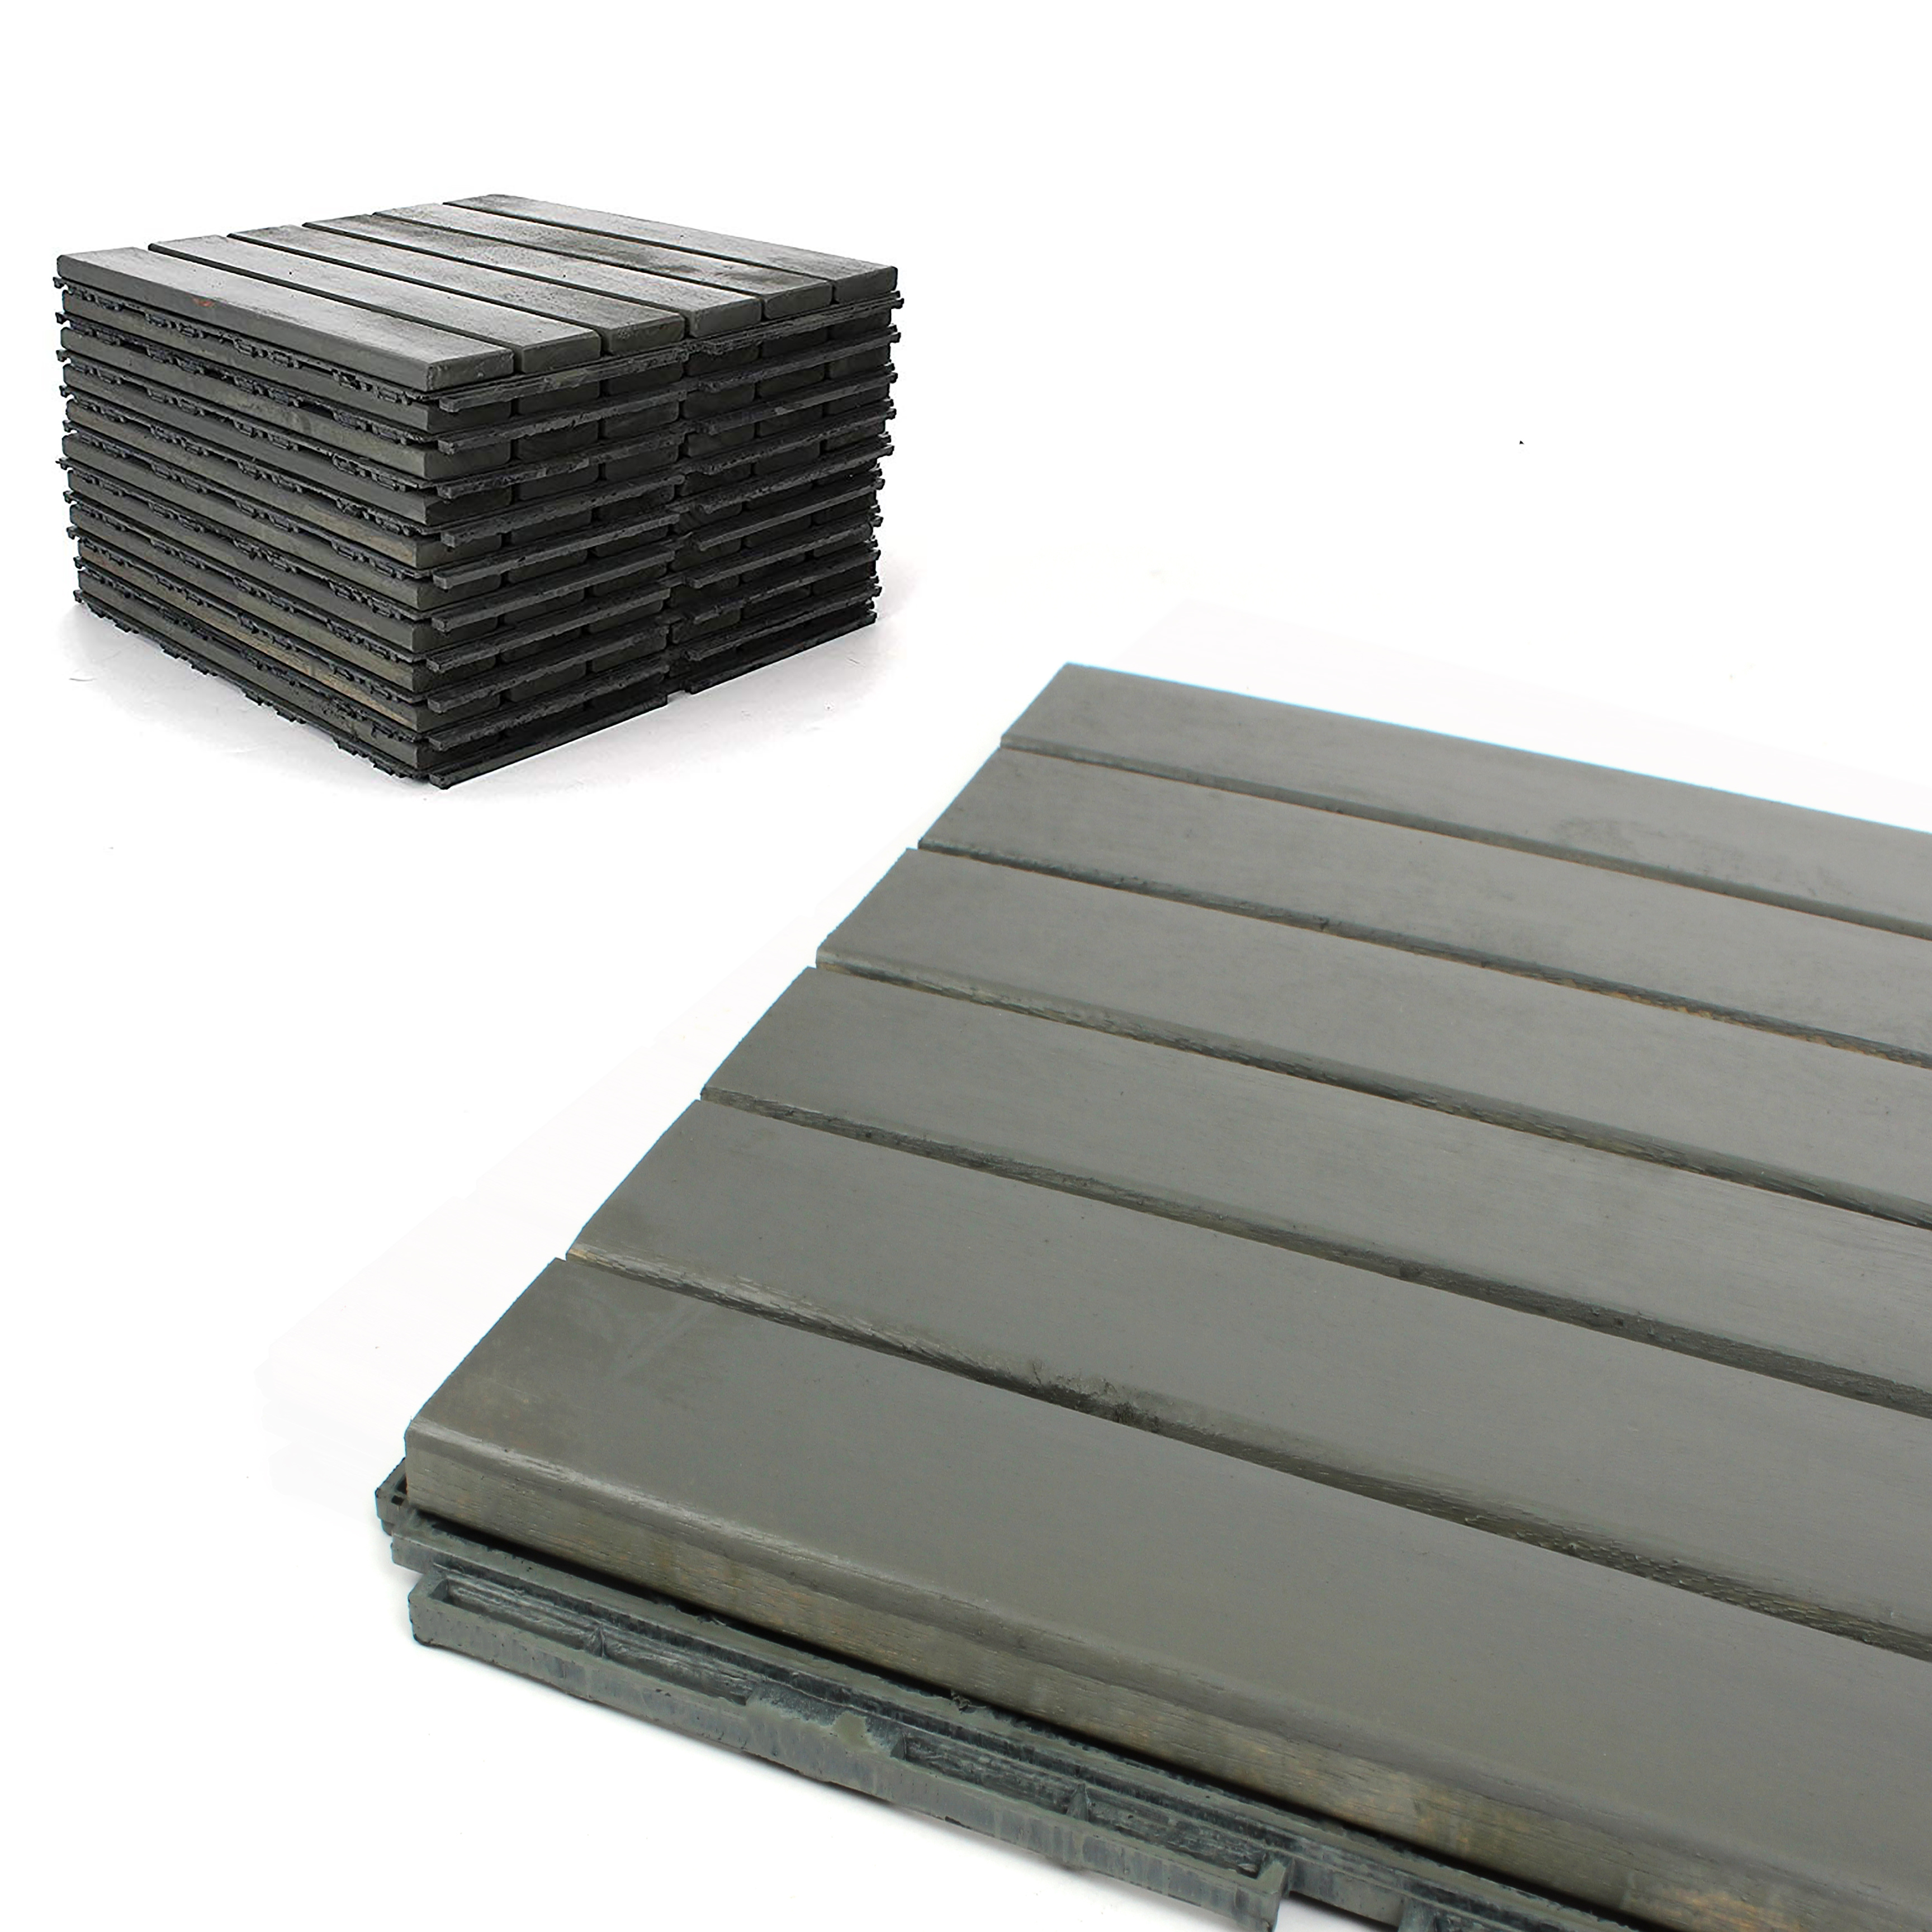 Deck Tiles Patio Pavers Acacia Wood Outdoor Flooring Interlocking 12 X12 6 Pack Modern Grey Finish Straight Pattern Decking